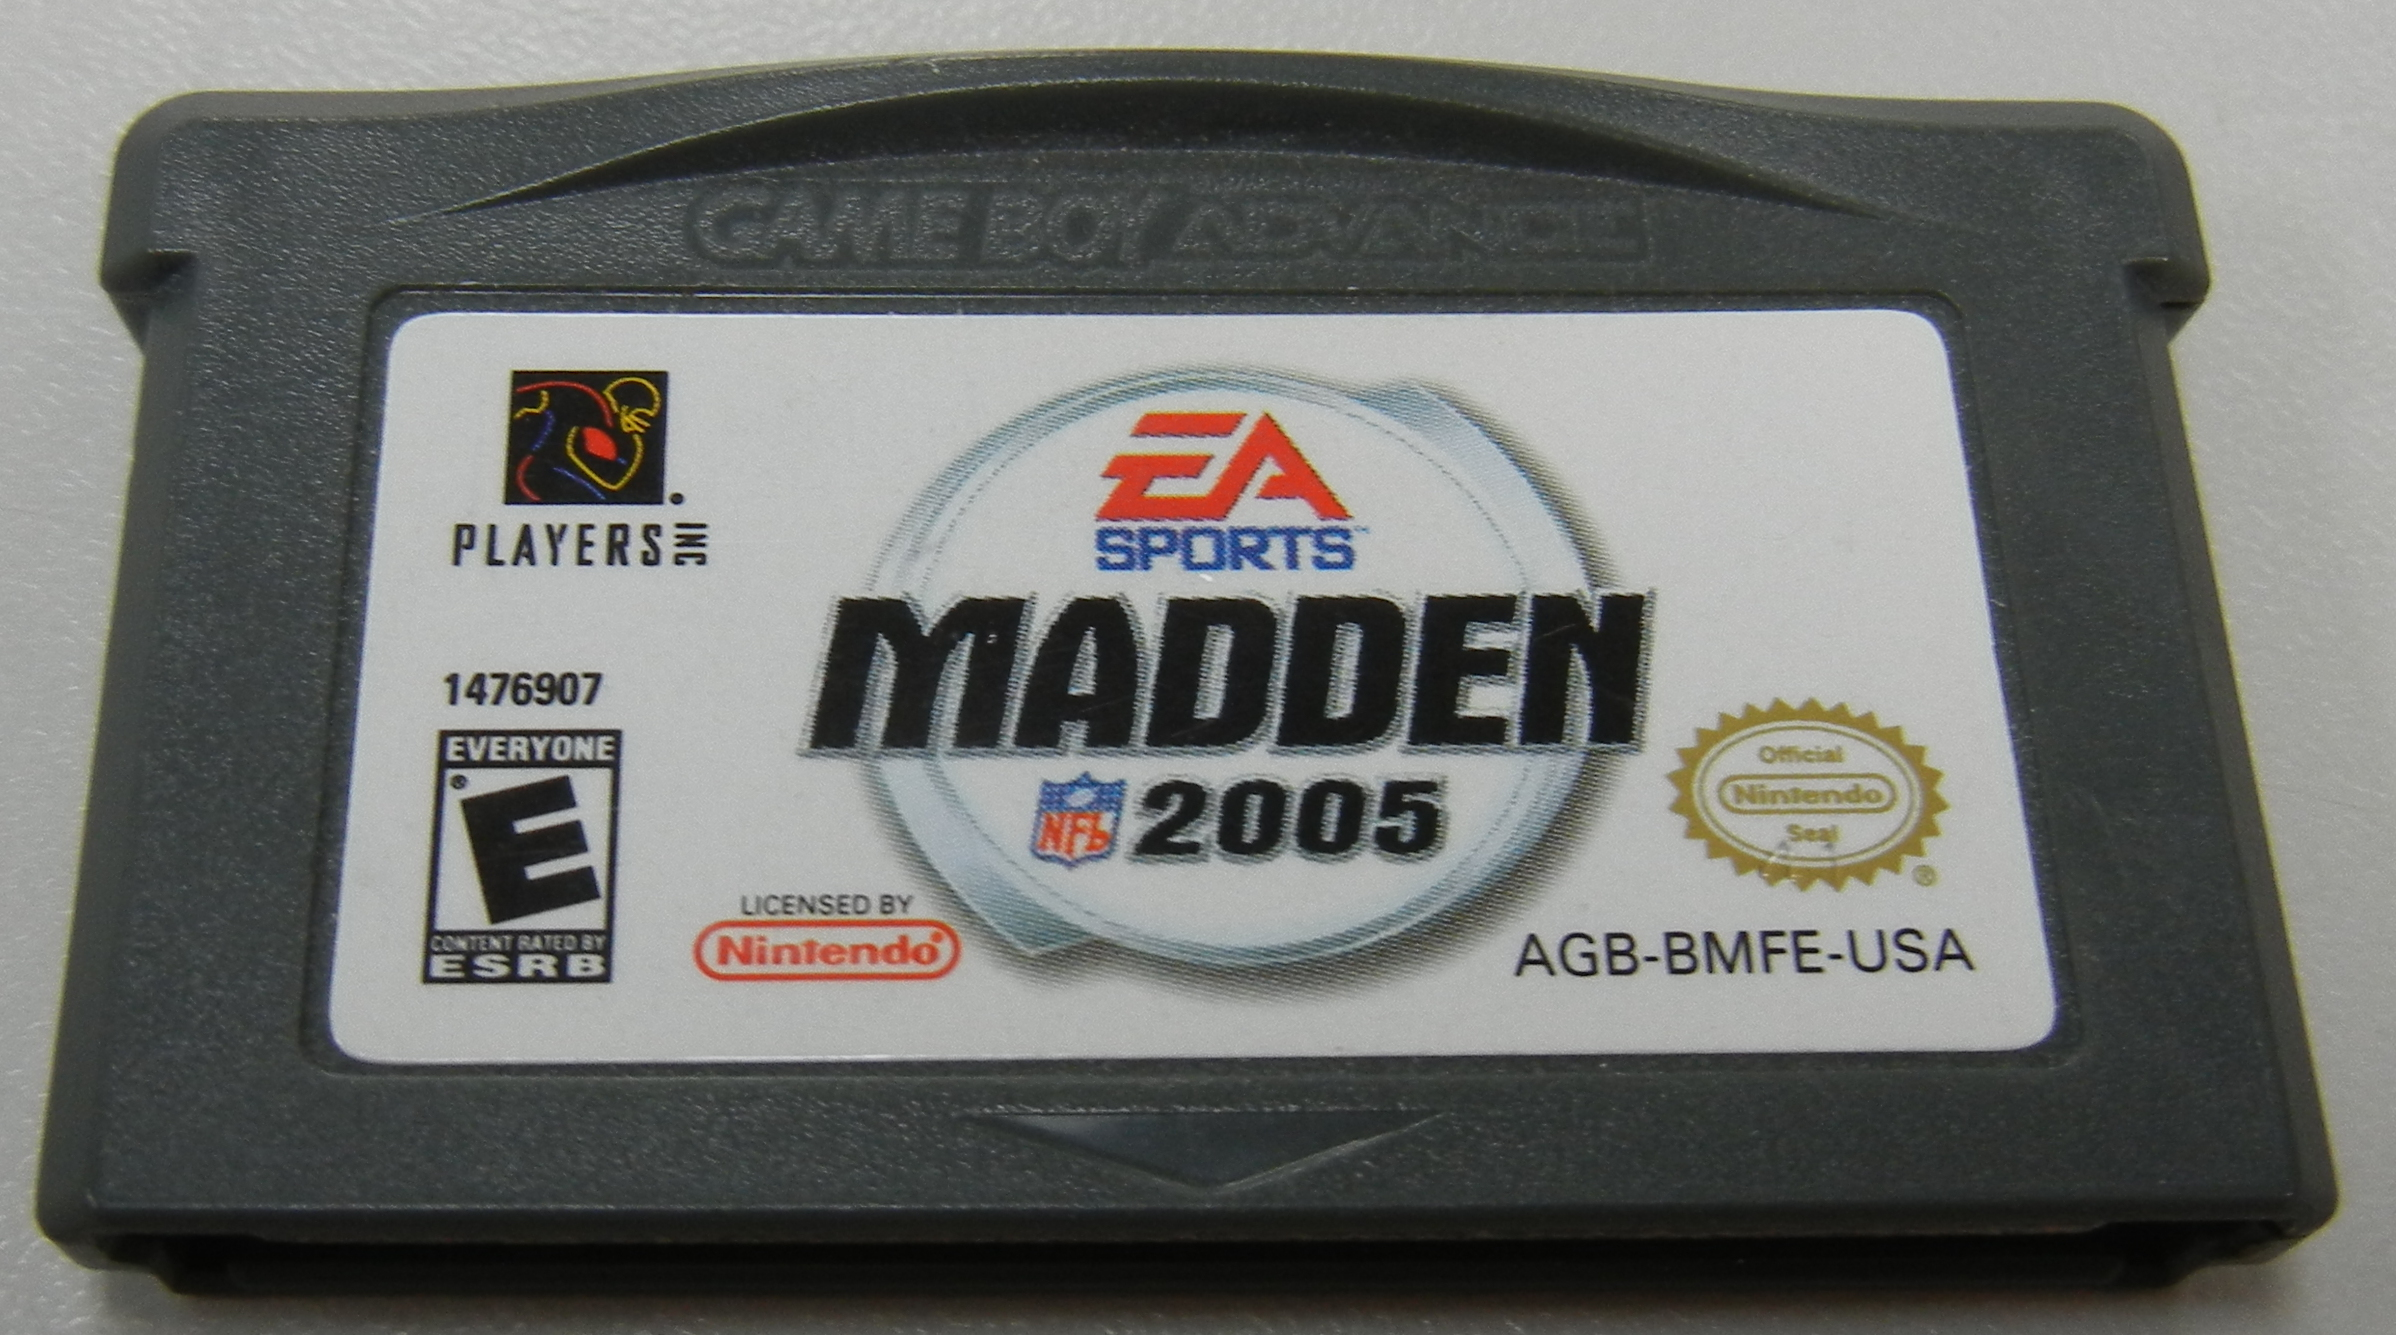 EA SPORTS MADDEN NFL 2005 GAMEBOY ADVANCE GAME